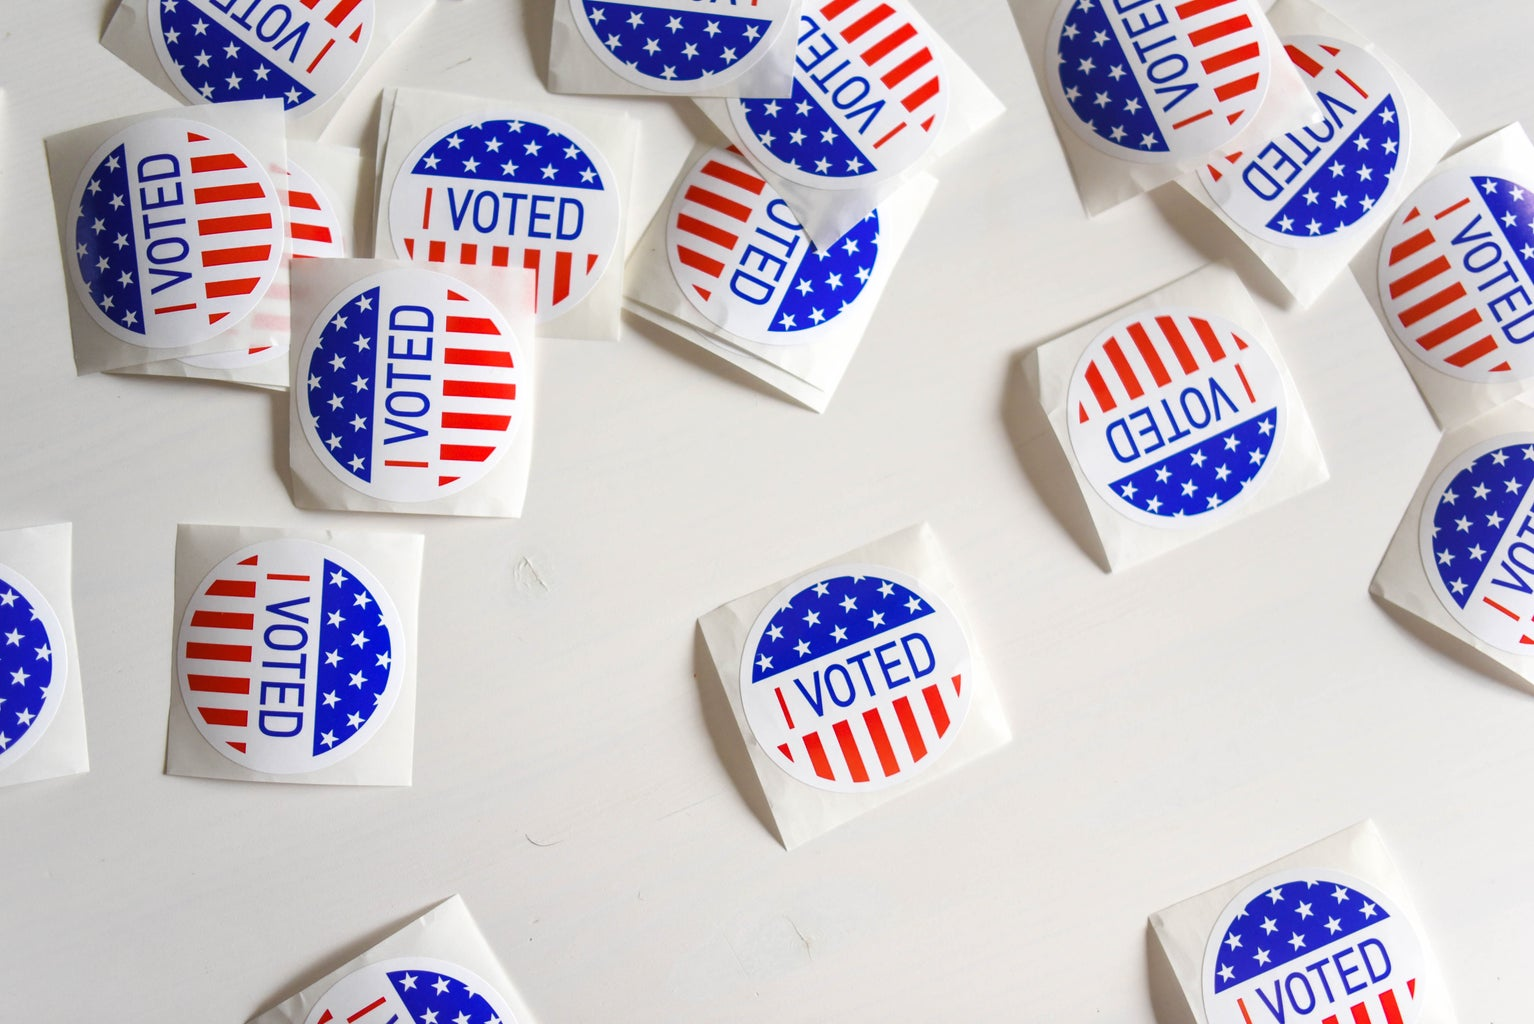 ""\""""I VOTED"""" stickers""1534|1024|?|en|2|29512be06bfad89ce9f65791bbf59057|False|UNLIKELY|0.2897016704082489